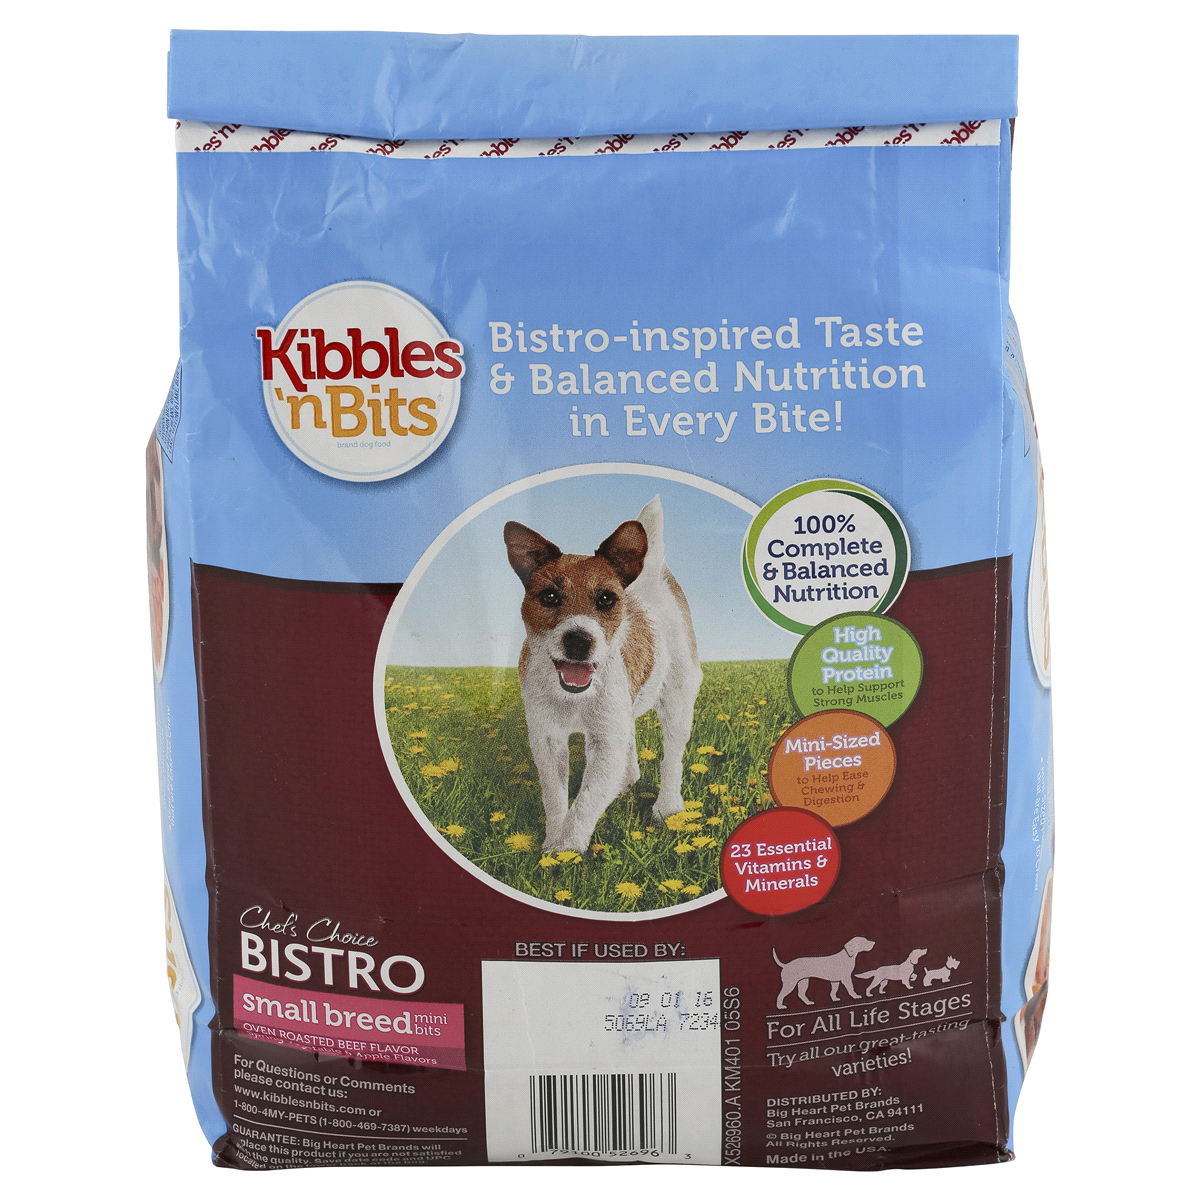 slide 4 of 4, Kibbles 'n Bits Dog Food Chef's Choice Bistro Small Breed Mini Bits Oven Roasted Beef,